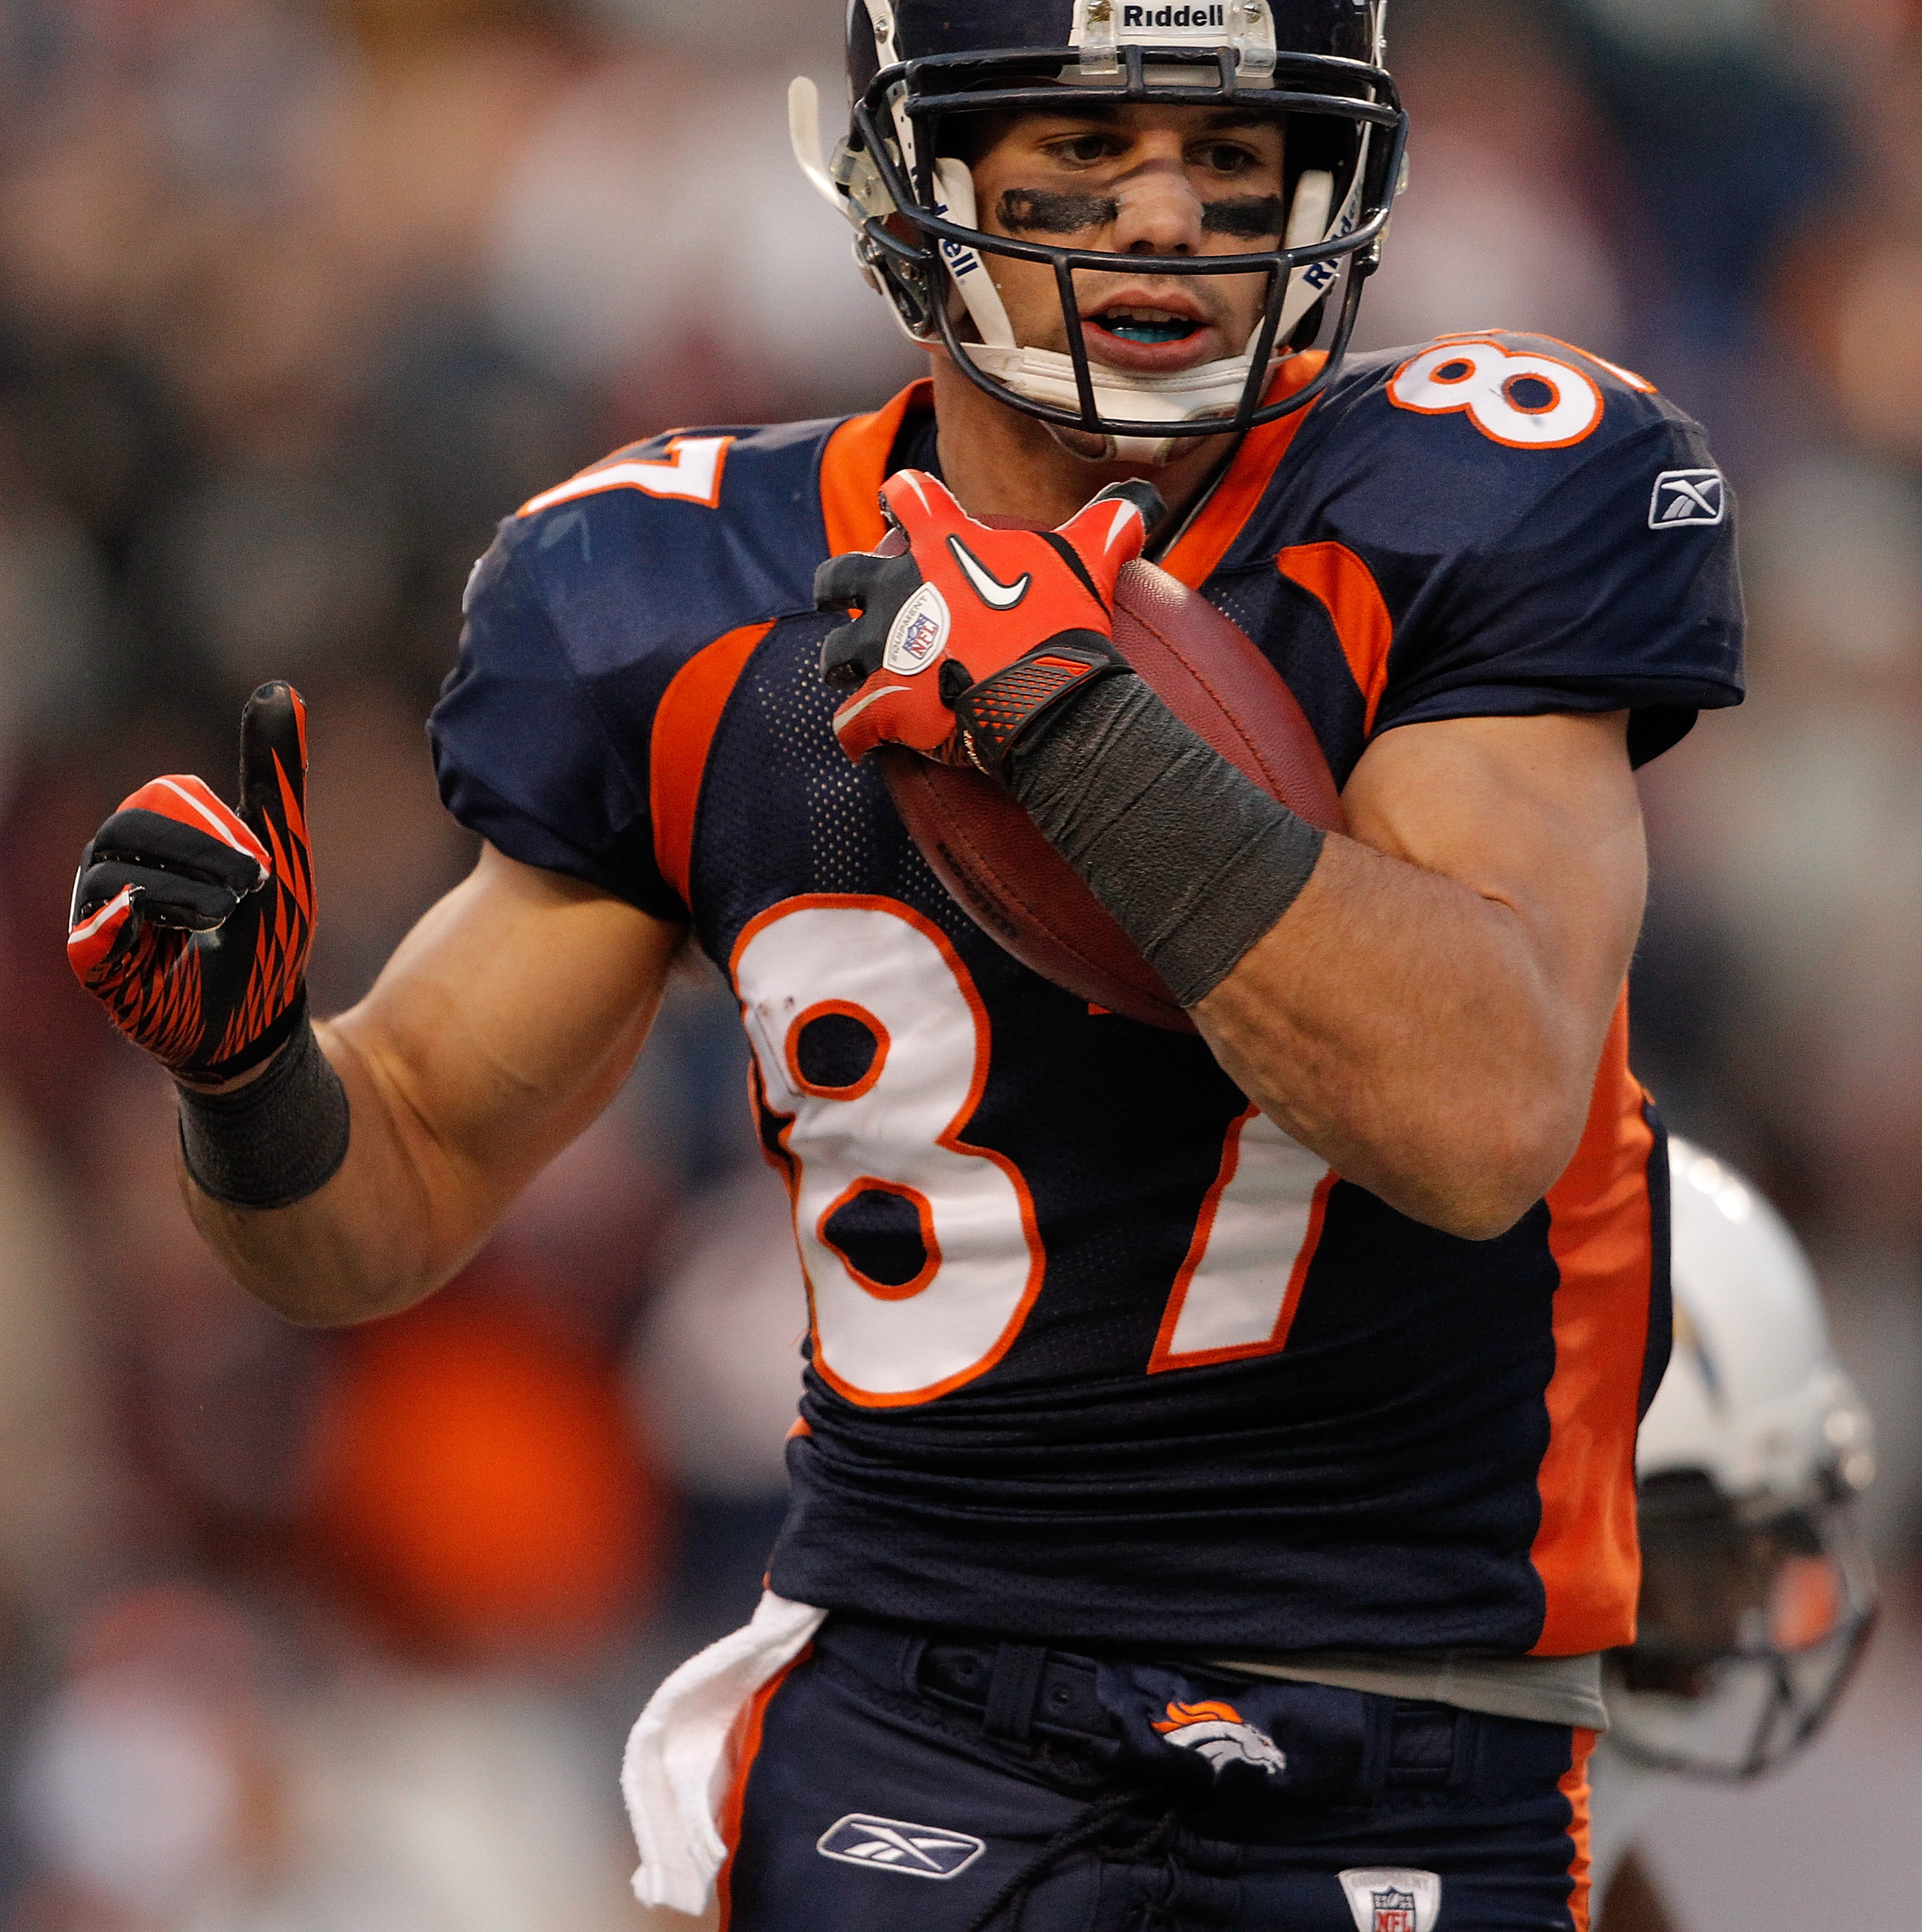 DENVER, CO - JANUARY 2:  Wide receiver Eric Decker #87 of the Denver Broncos scores a touchdown off a pass from Tim Tebow during the third quarter against the San Diego Chargers at INVESCO Field at Mile High on January 2, 2011 in Denver, Colorado. (Photo